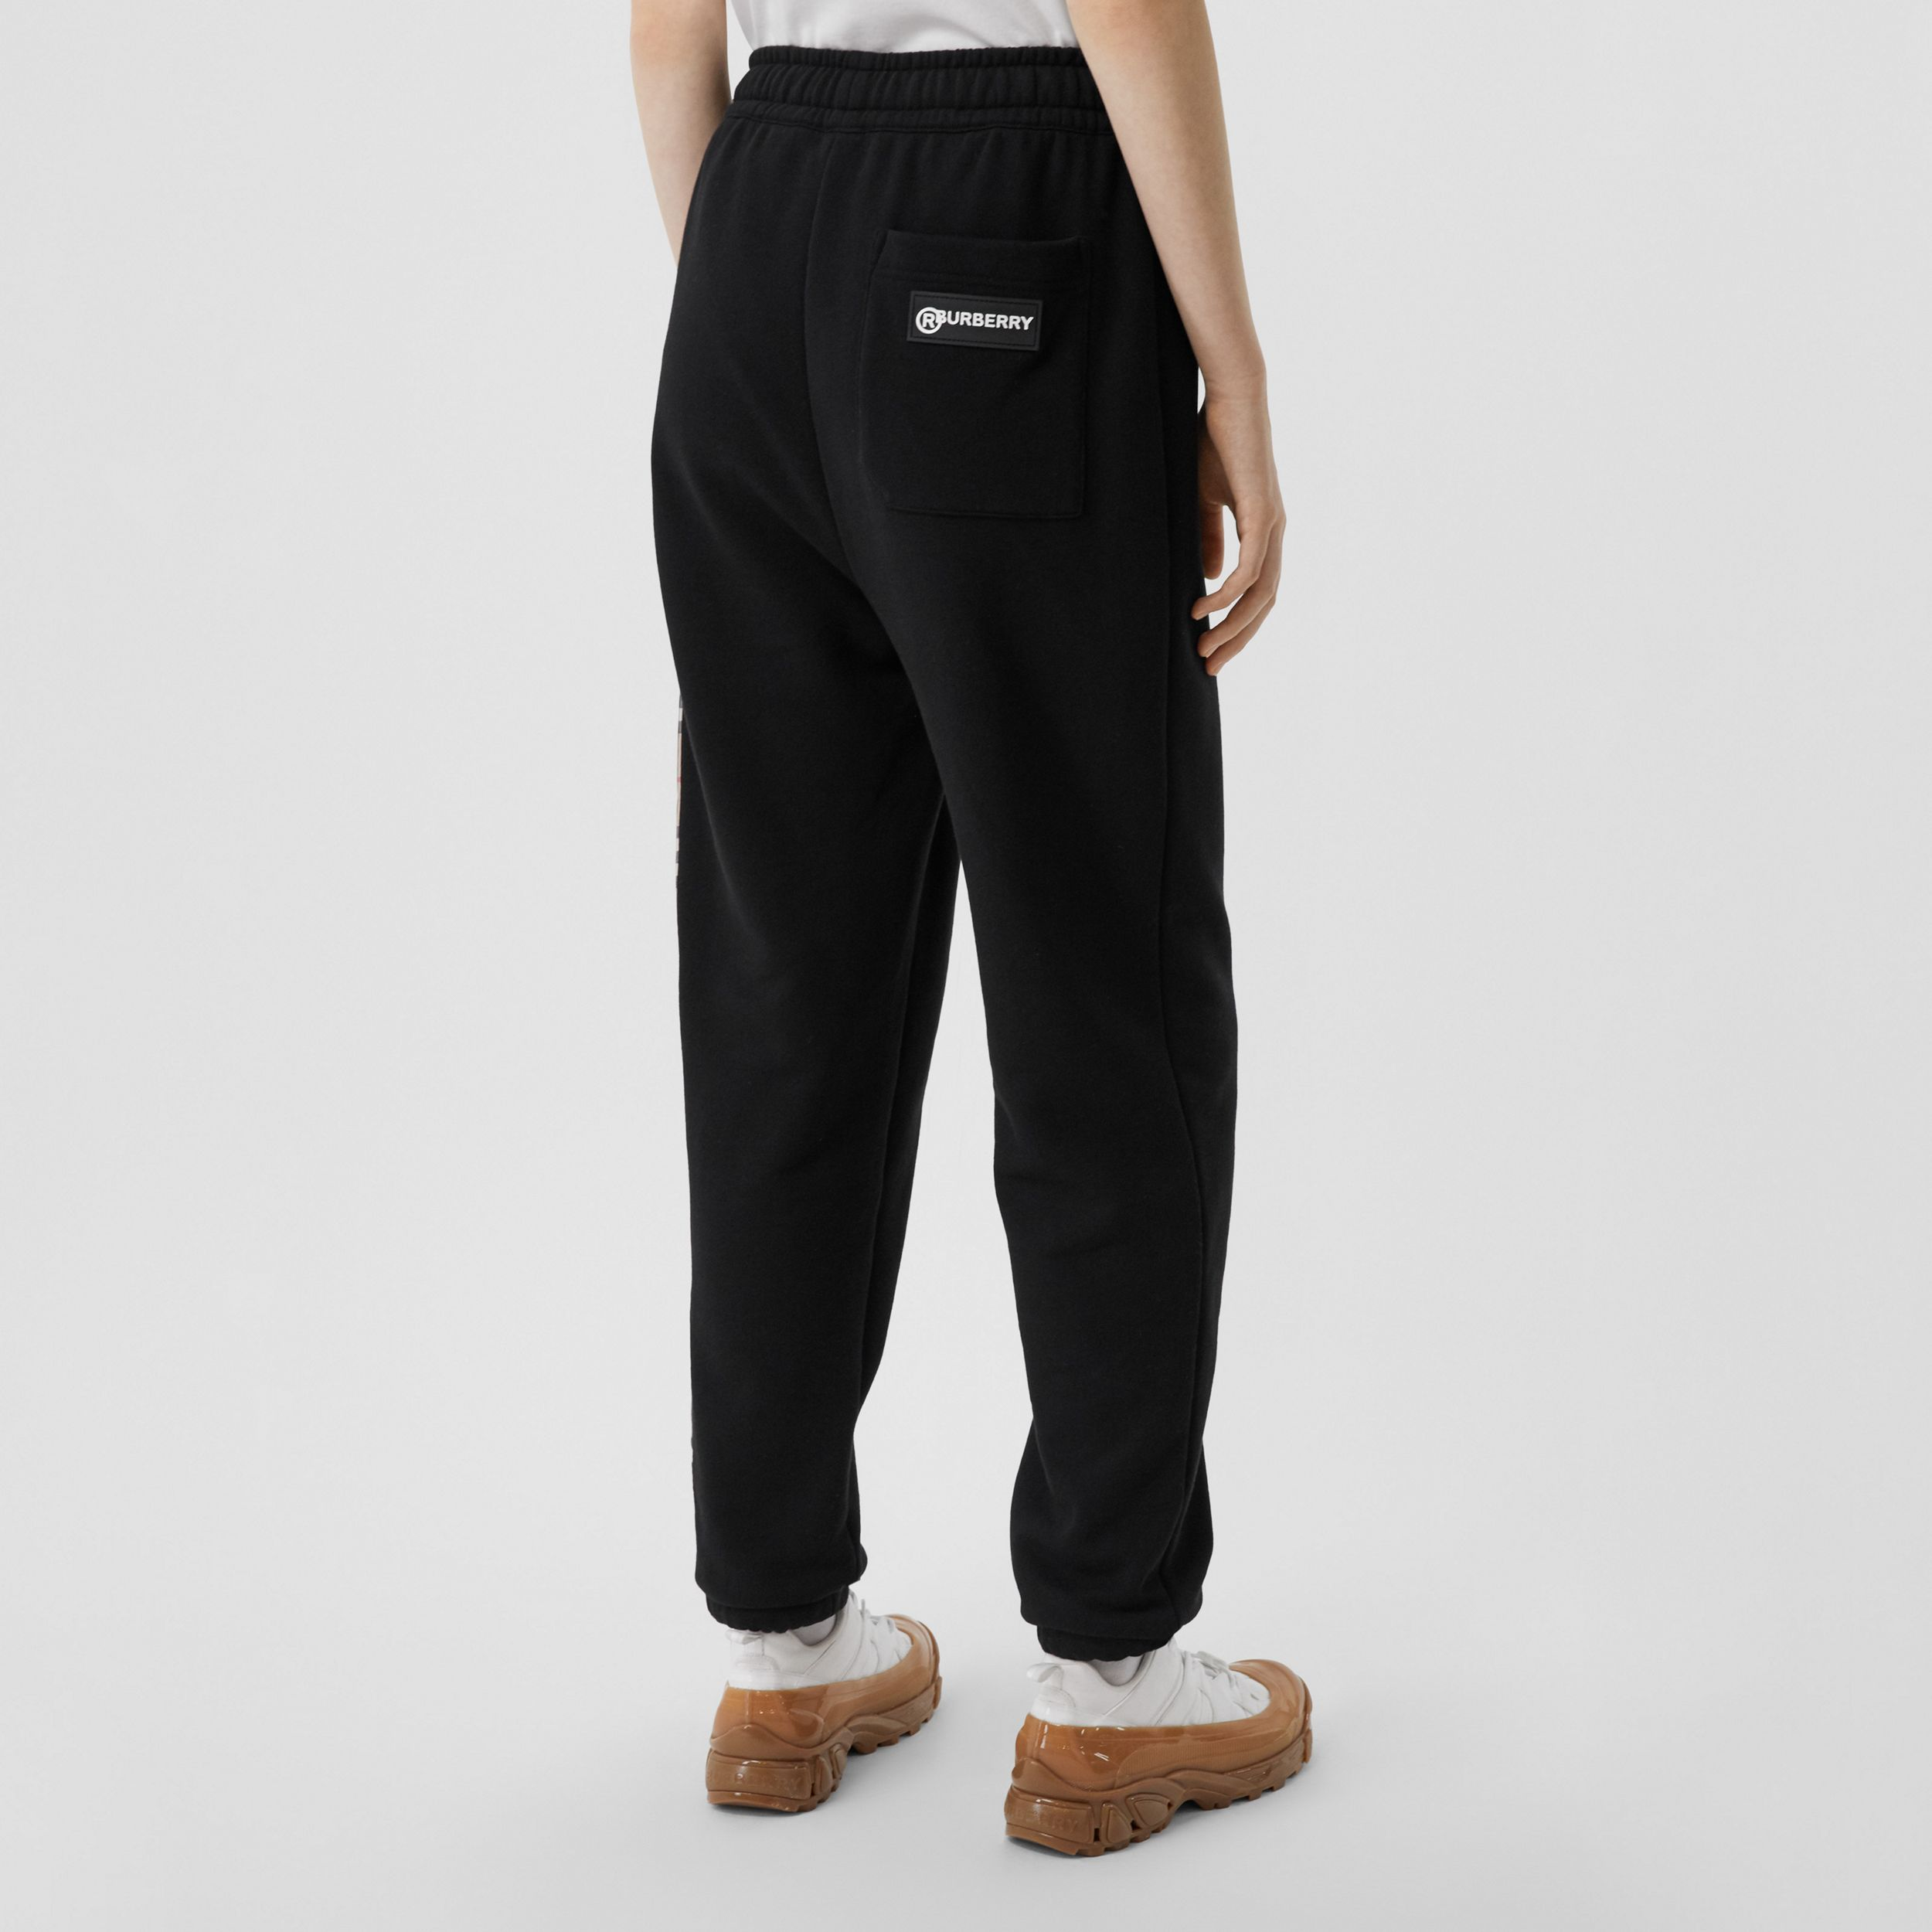 Vintage Check Panel Cotton Jogging Pants in Black - Women | Burberry Hong Kong S.A.R. - 3